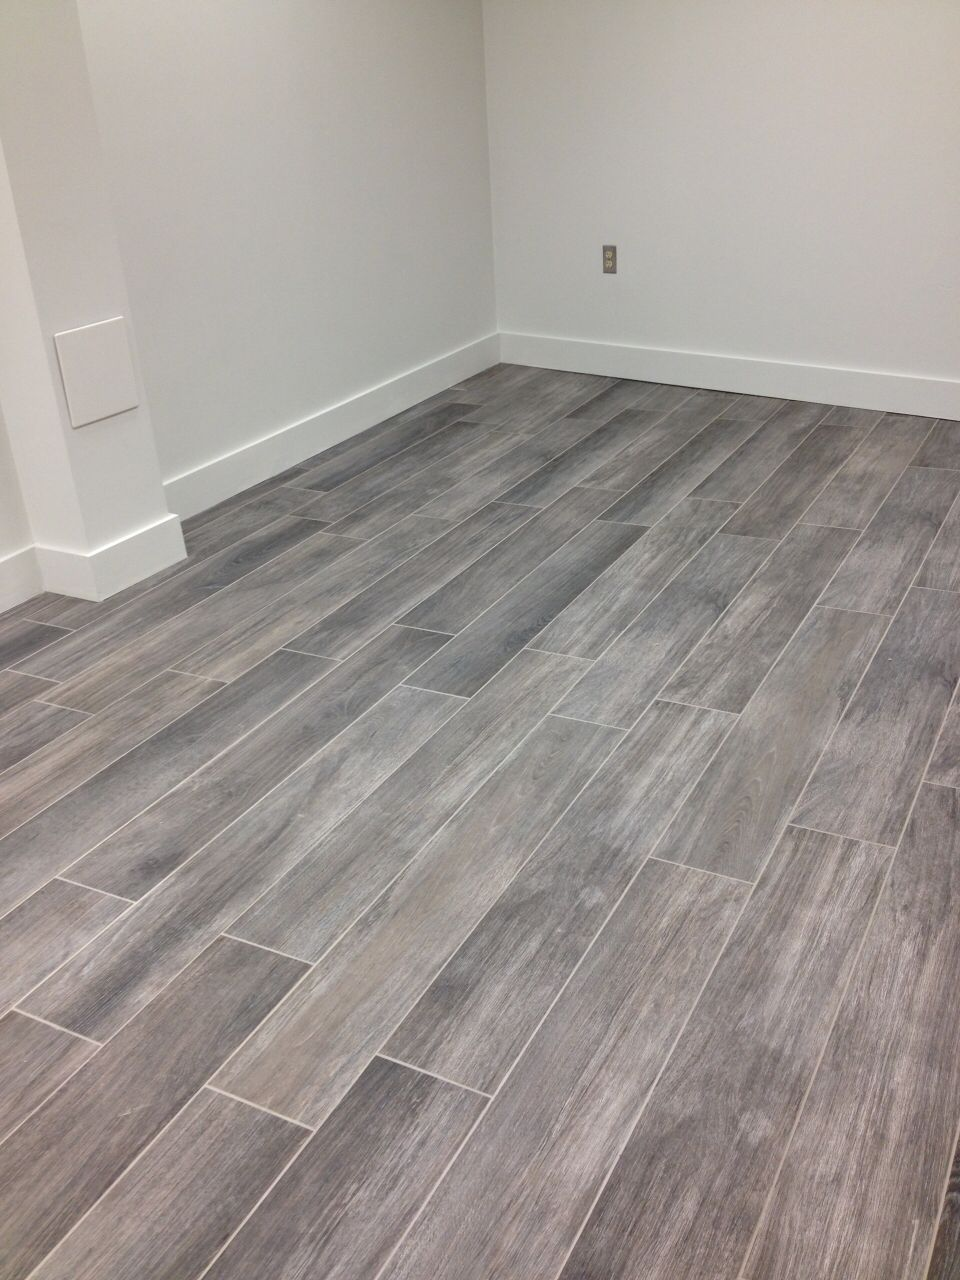 Porcelain Grey Wood Tile Mb Grey Wood Tile Wood Tile